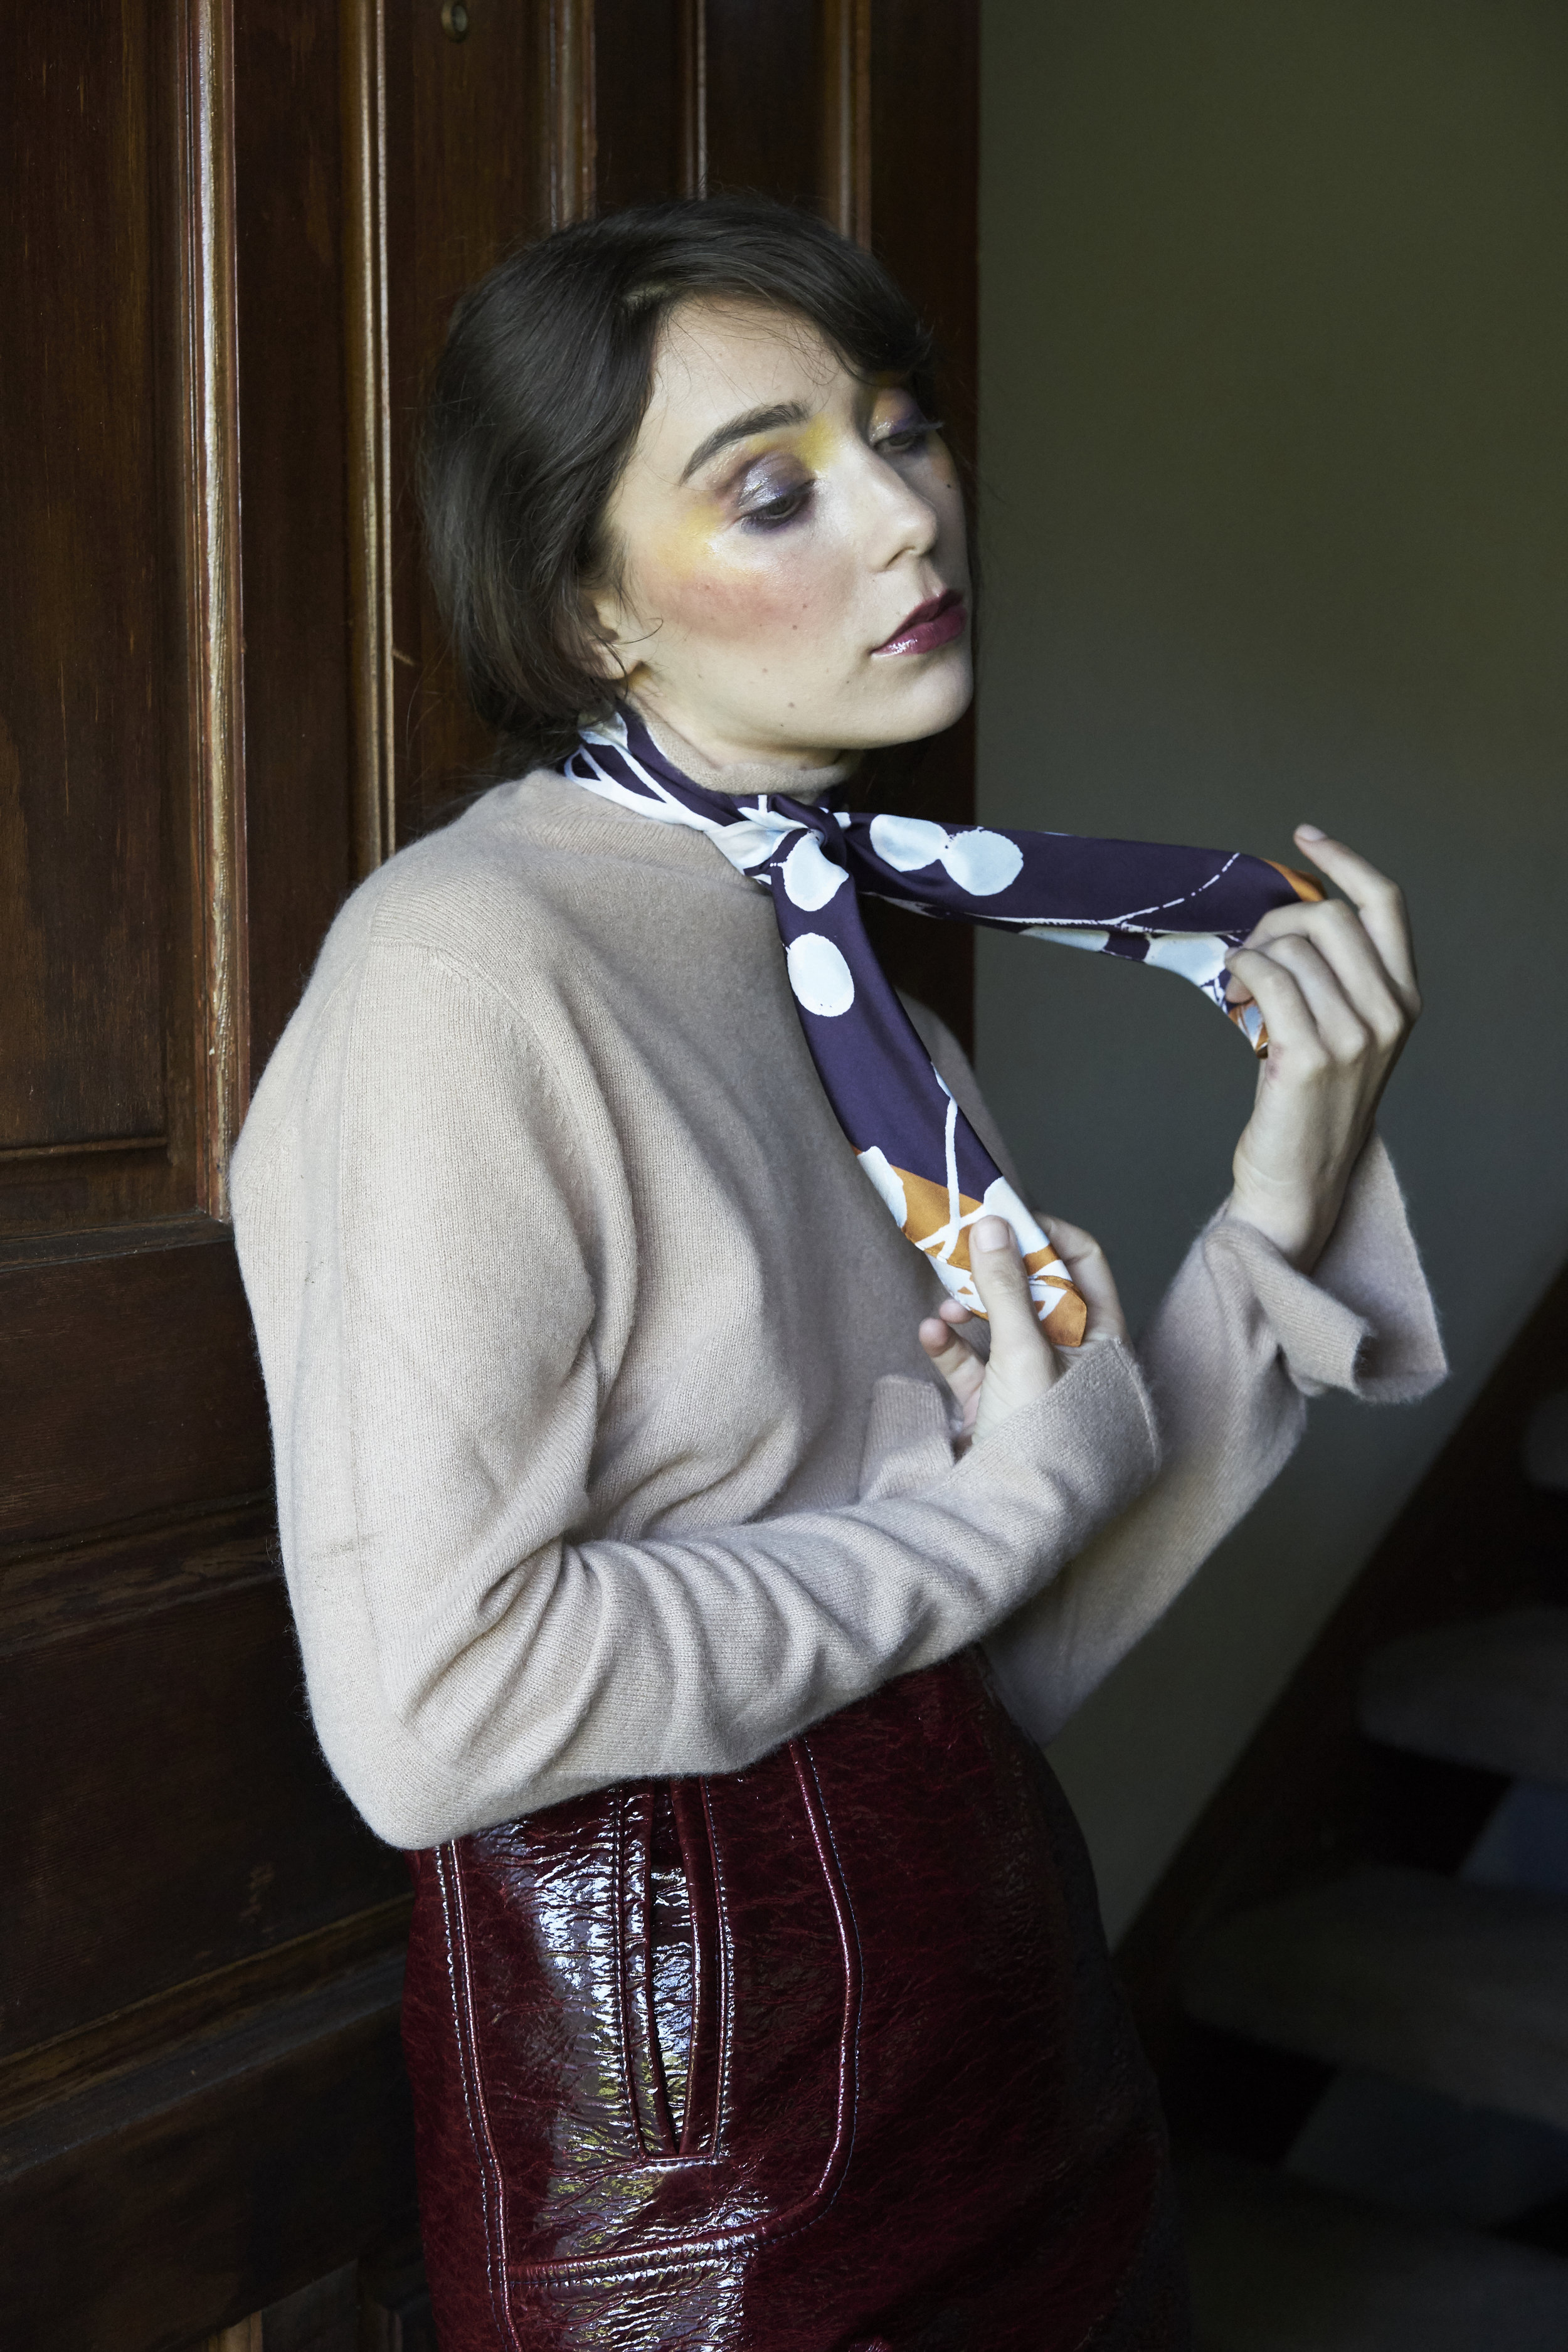 Sweater—Margaret Oleary, Scarf—Epice / Margaret Oleary,Skirt—H&M Studio